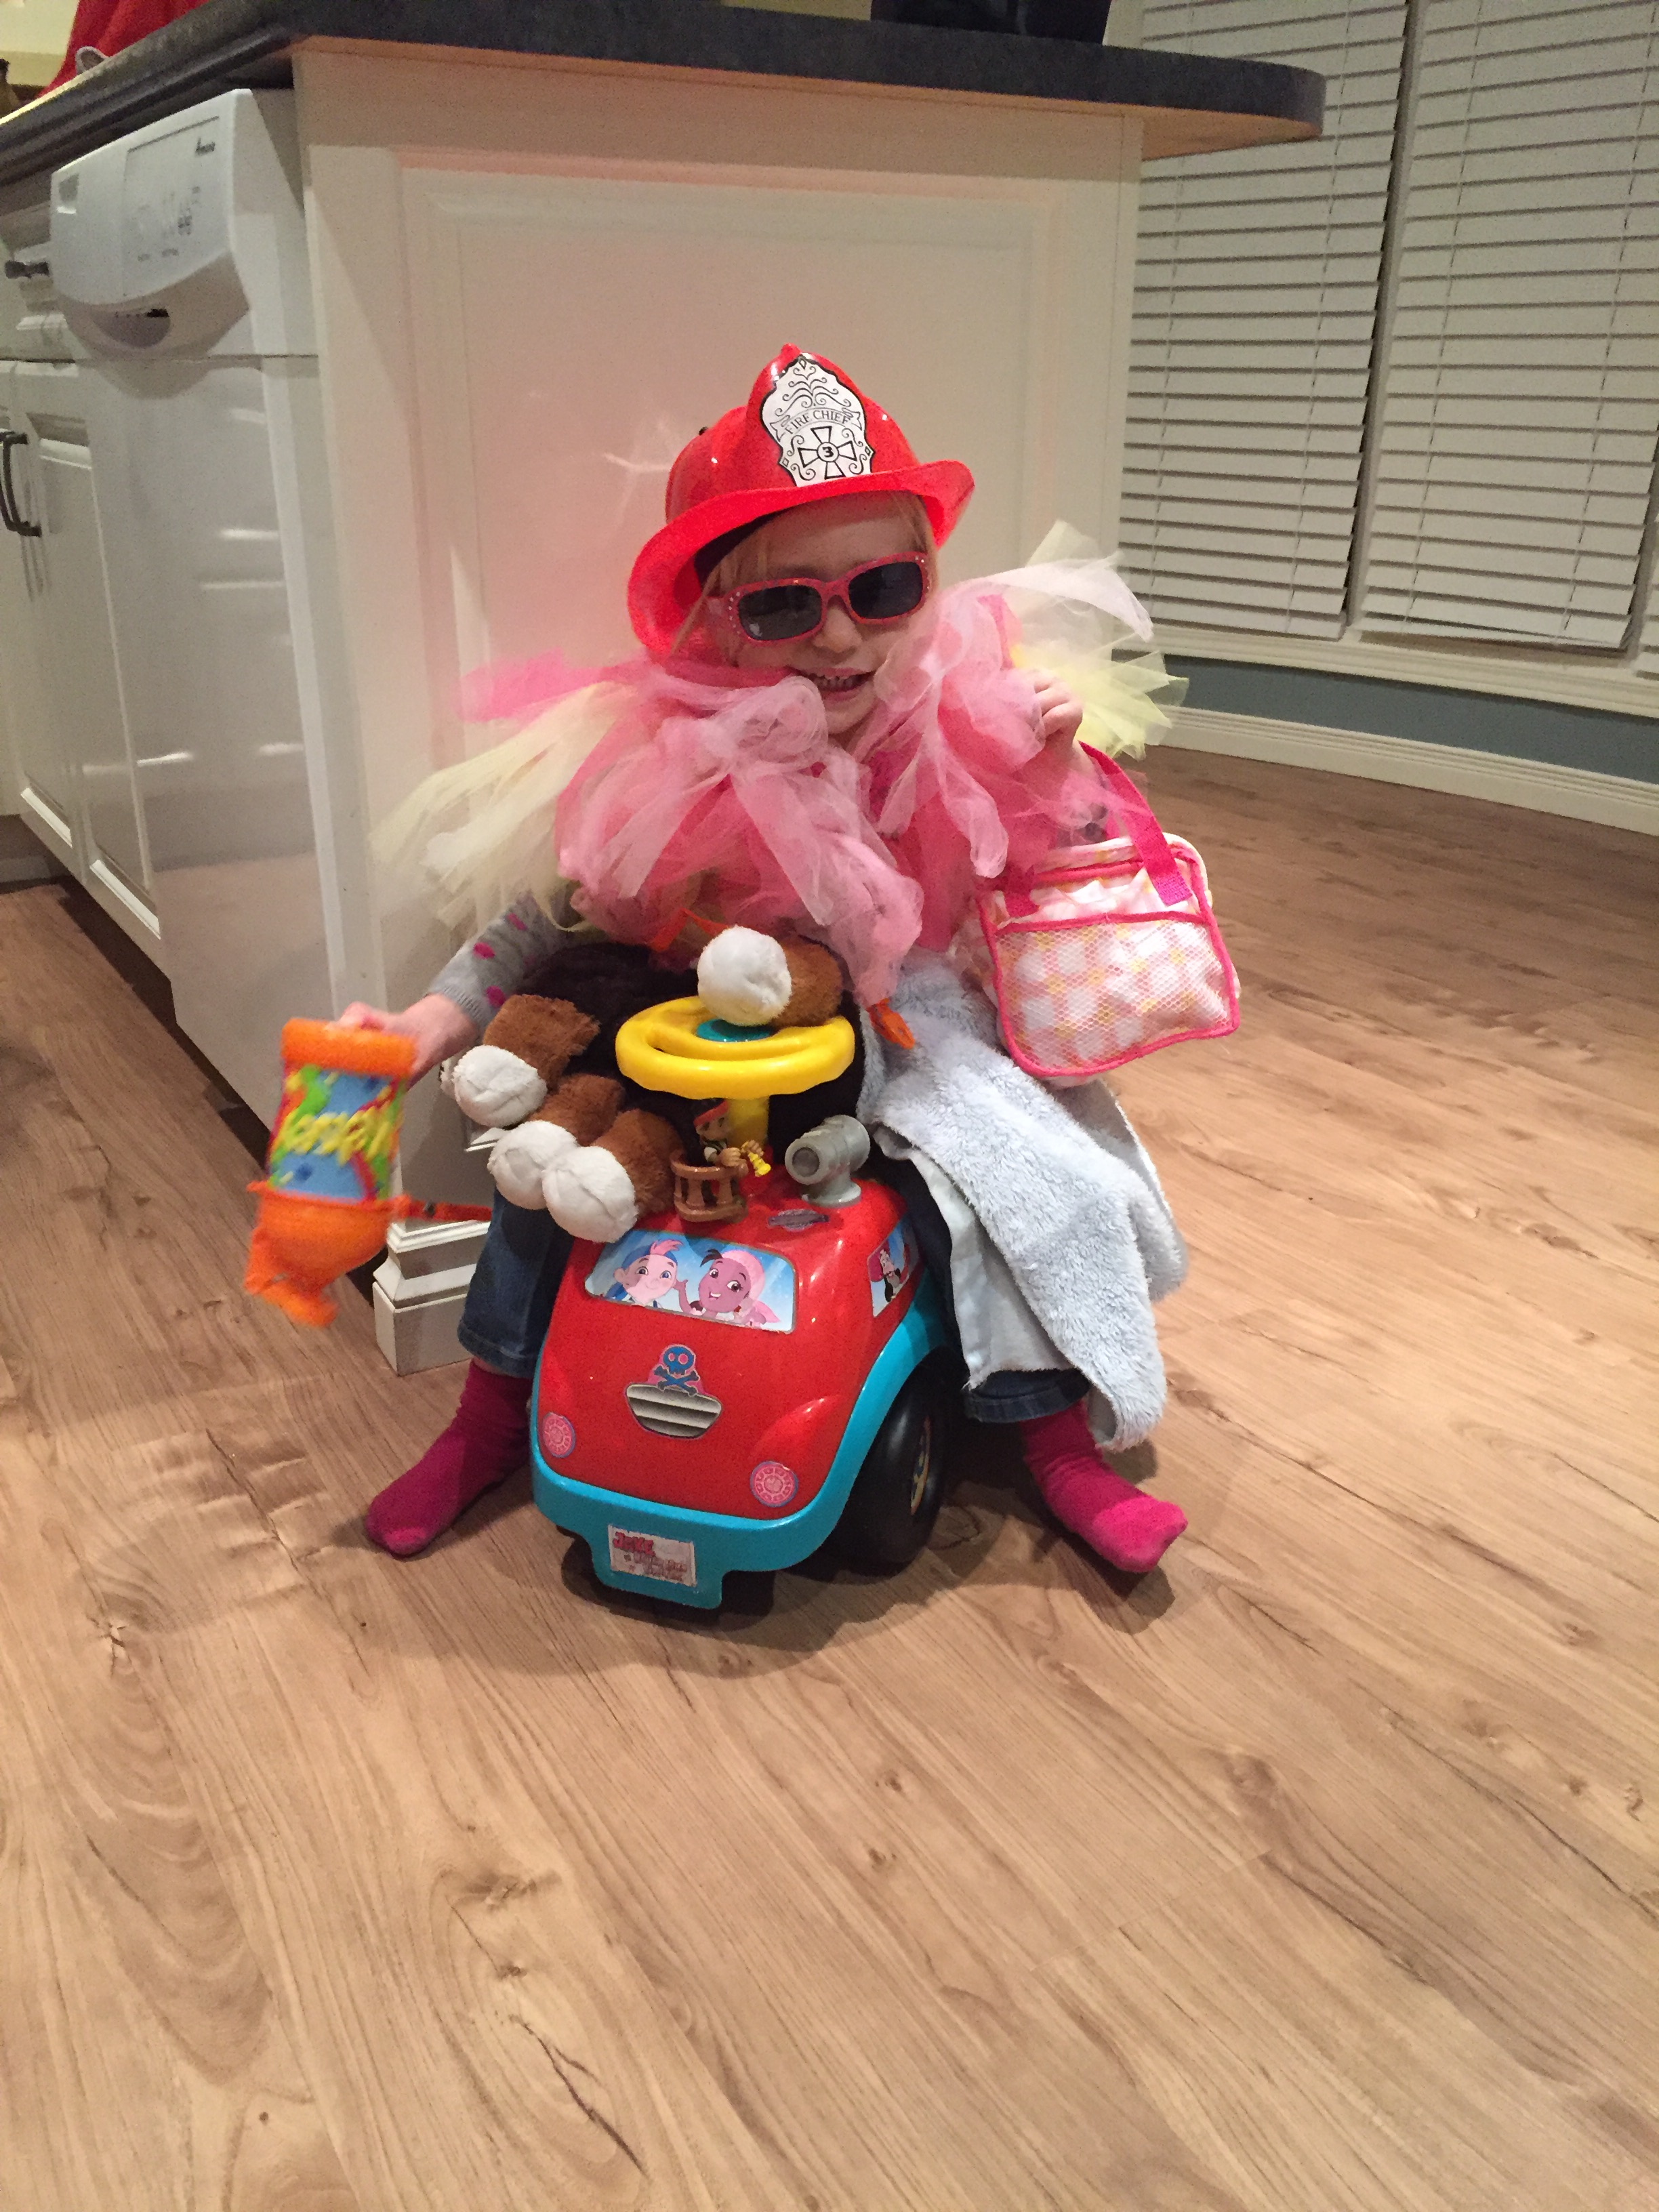 11 Reasons Why Your Kids Don't Want To Play Dress Up - And How You Can Change This!